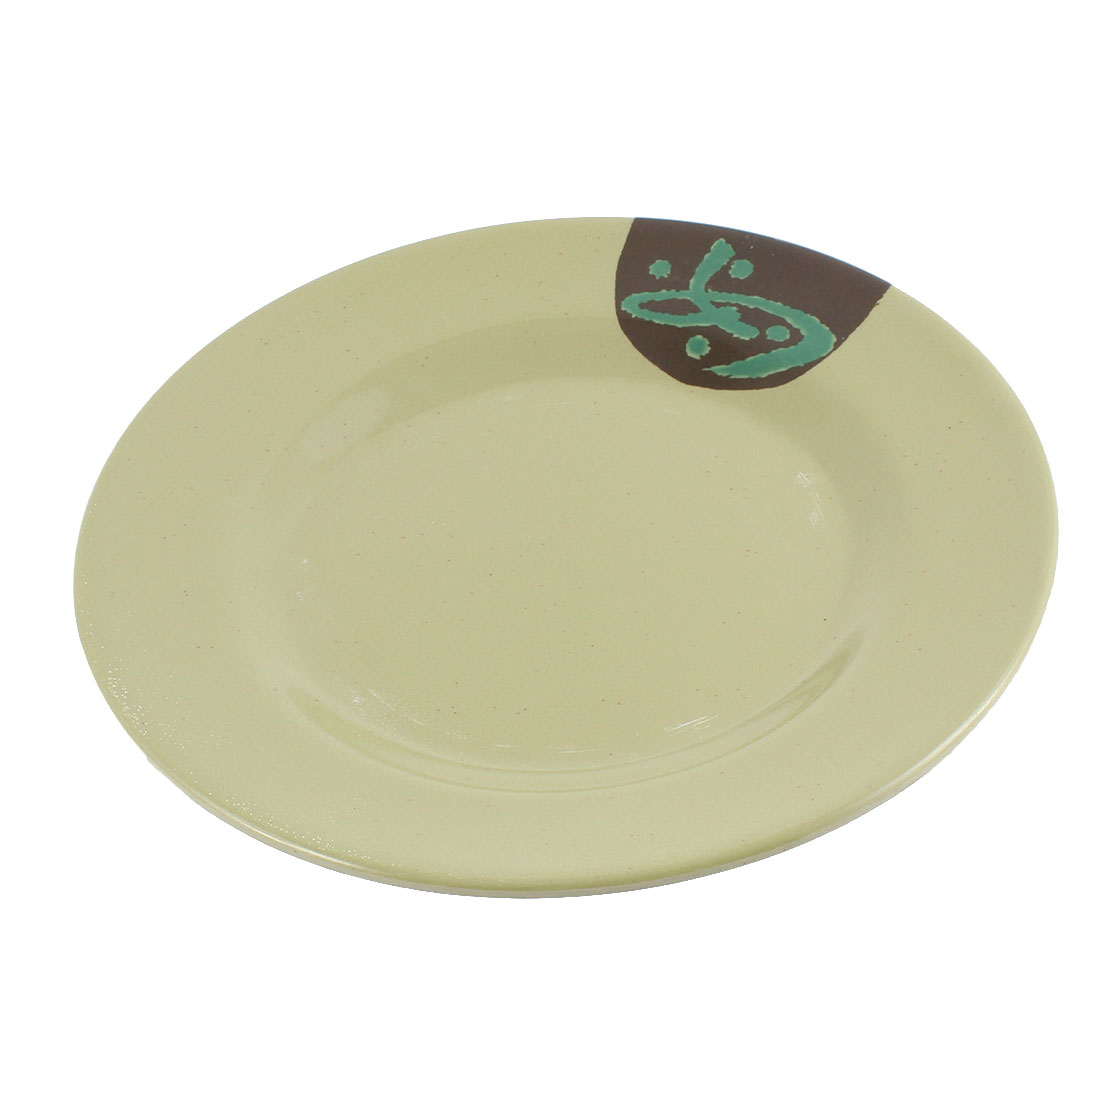 Character Printed Food Serving Dish Plate Kitchenware Army Green 9 Inch Dia